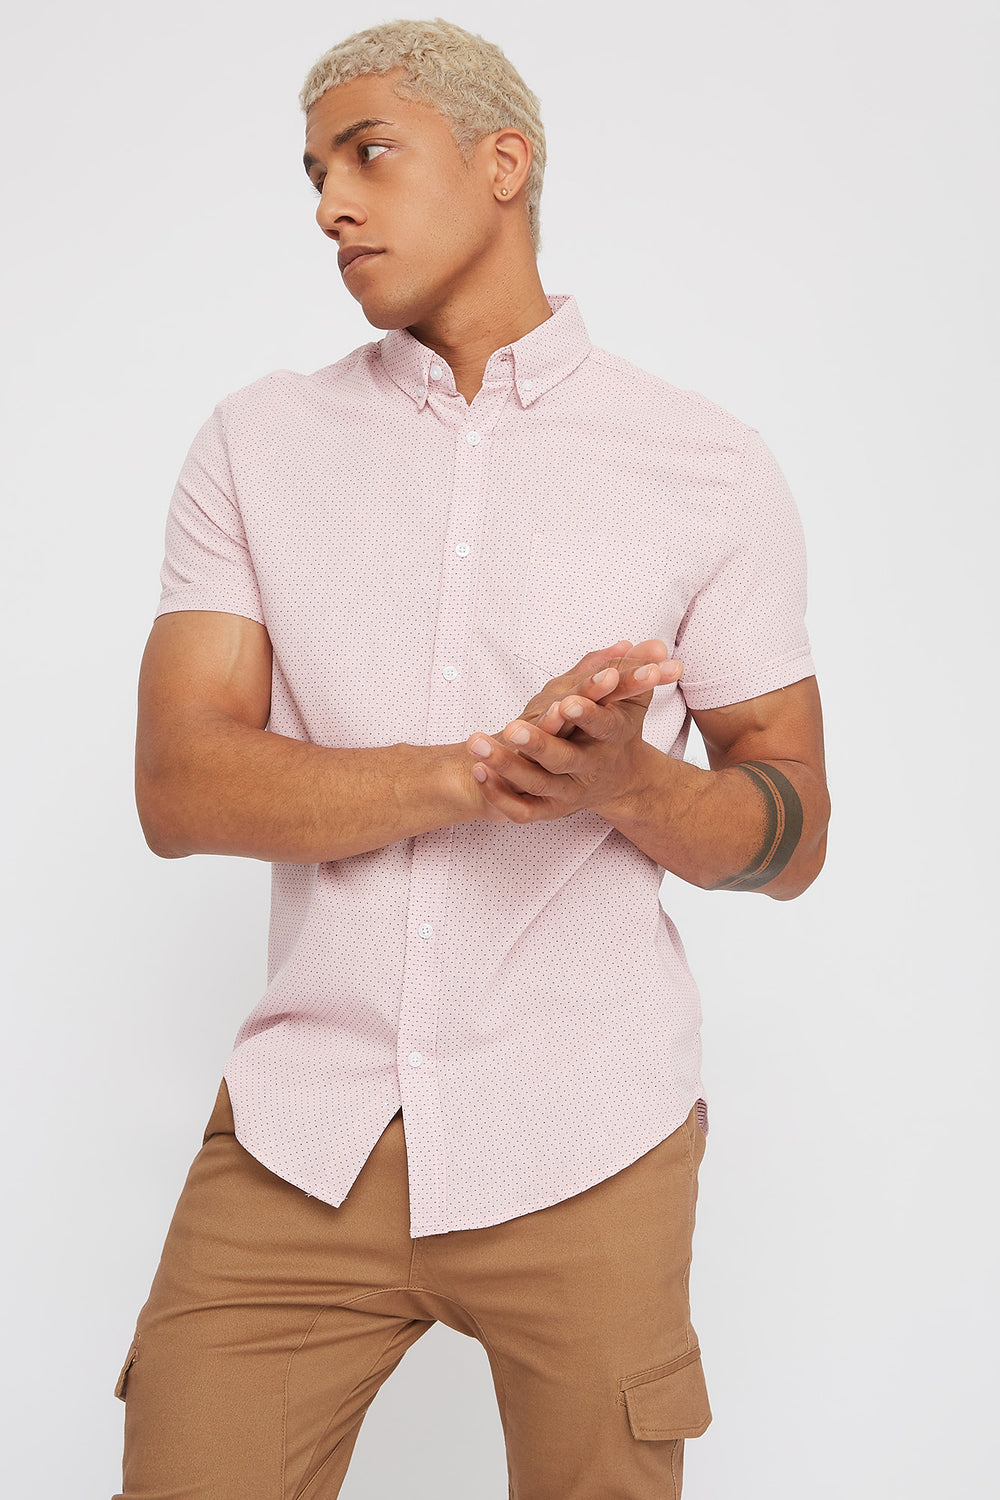 Dotted Button-Up Short Sleeve Shirt Pink